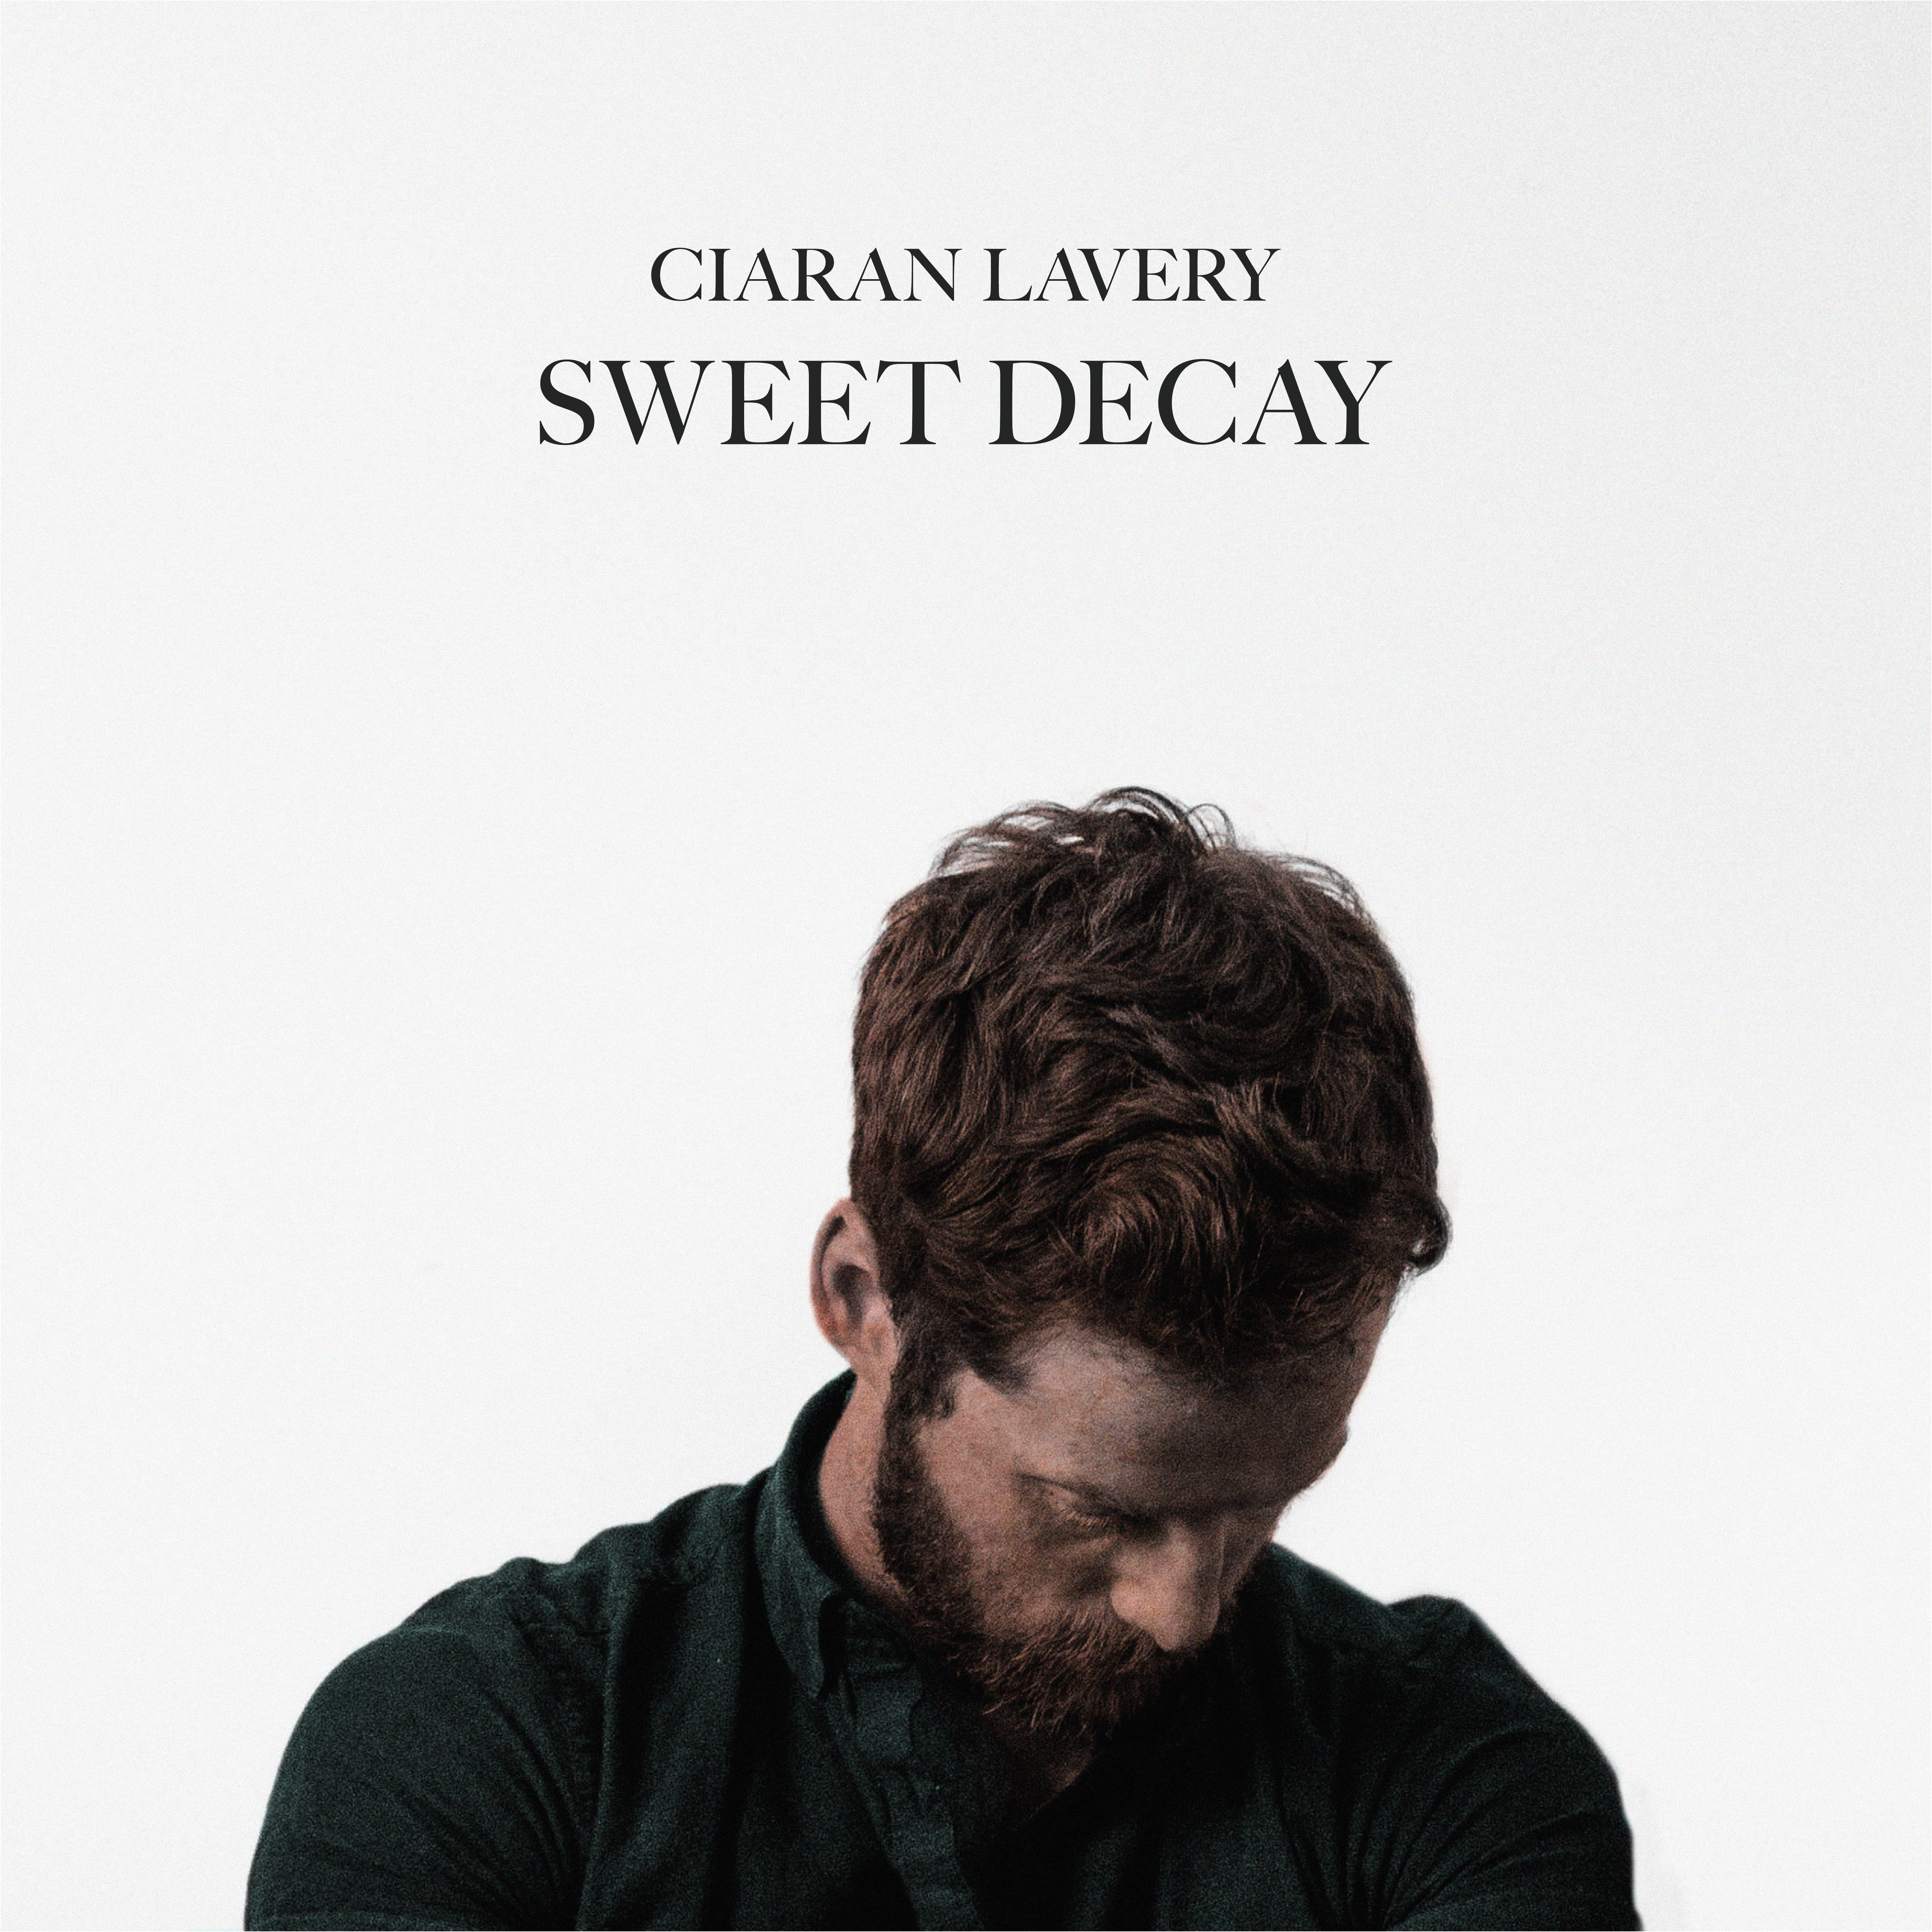 Sweet Decay (CD) - Ciaran Lavery